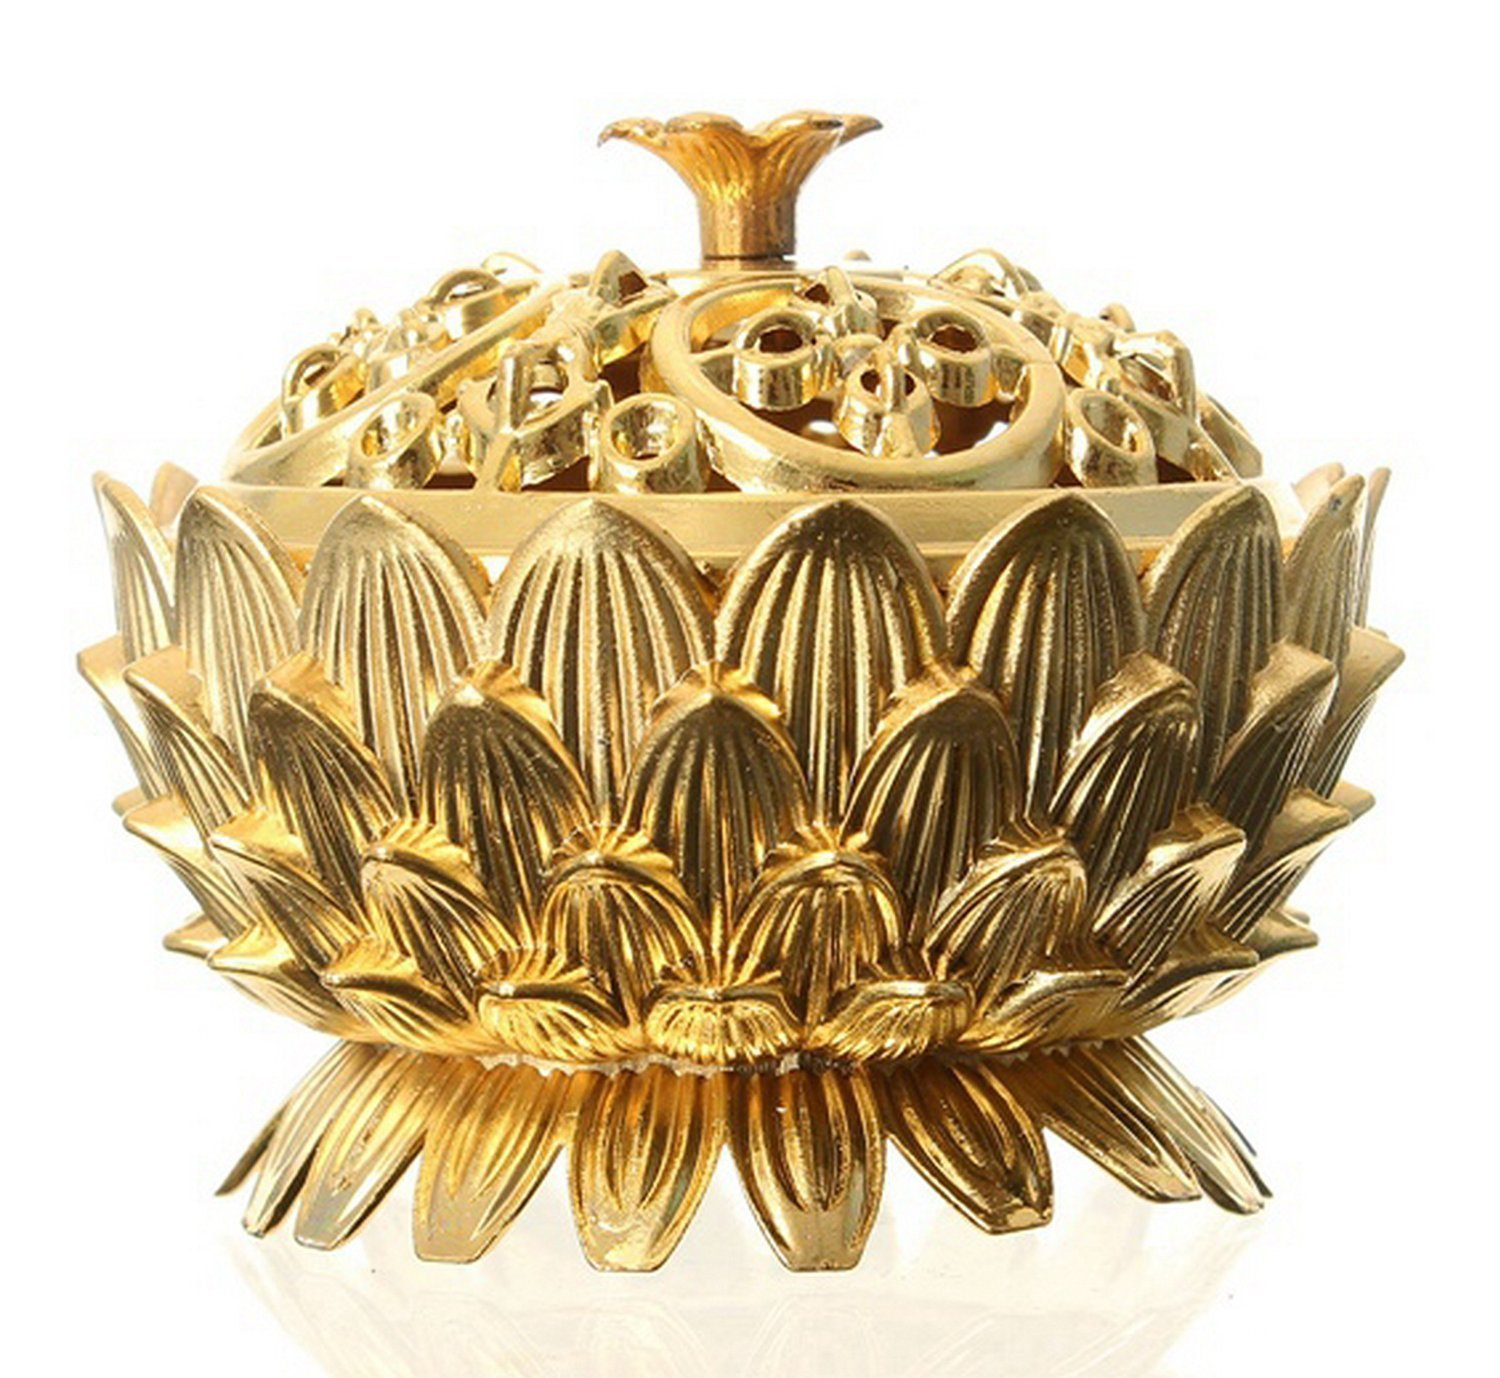 Incense Burner Lotus Flower Classical Tibetan Alloy Mini Sandalwood Censer